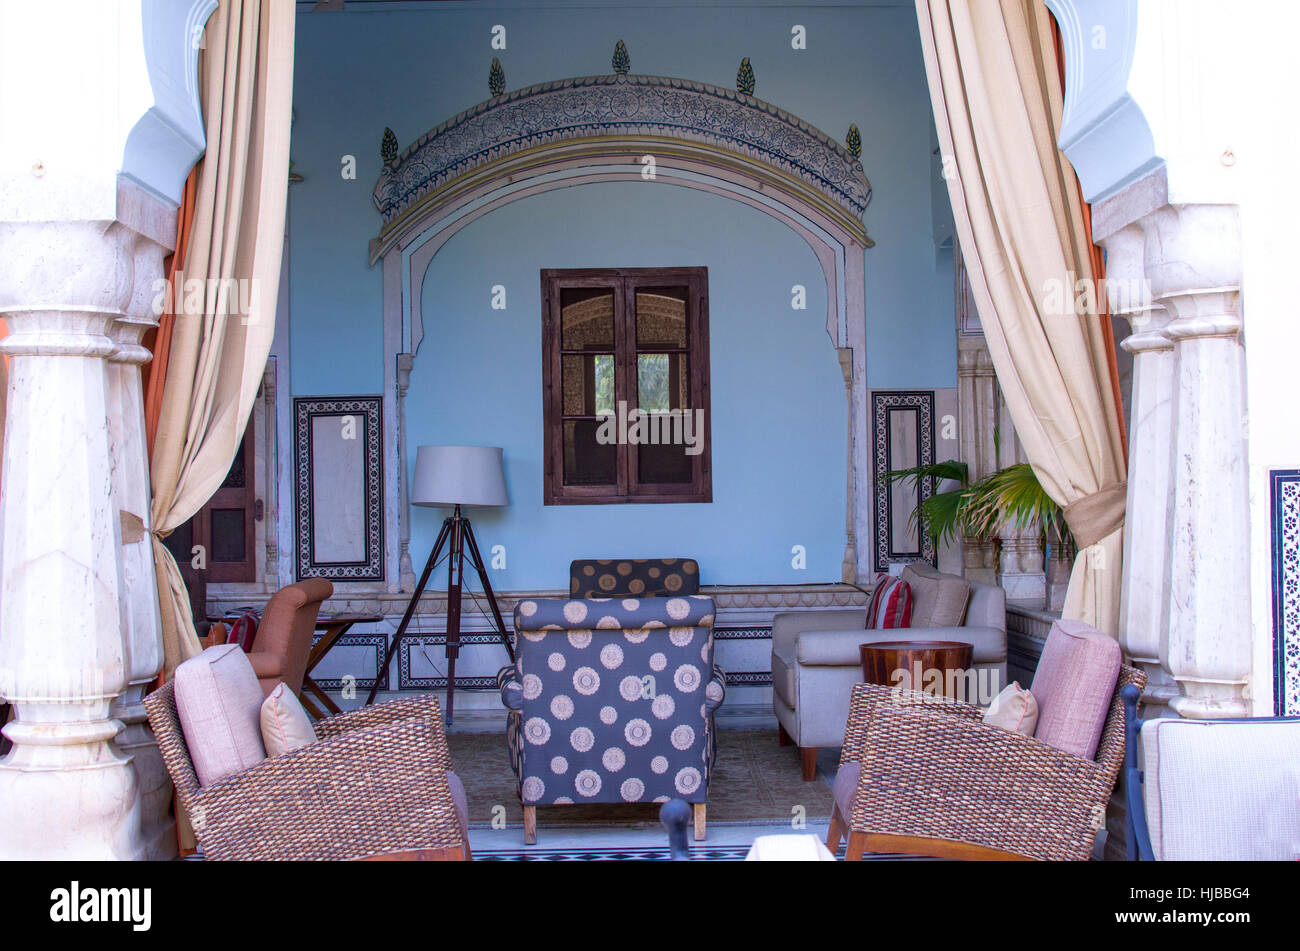 Interior In The Indian Style With Furniture An Interior Indian Stock Photo Alamy